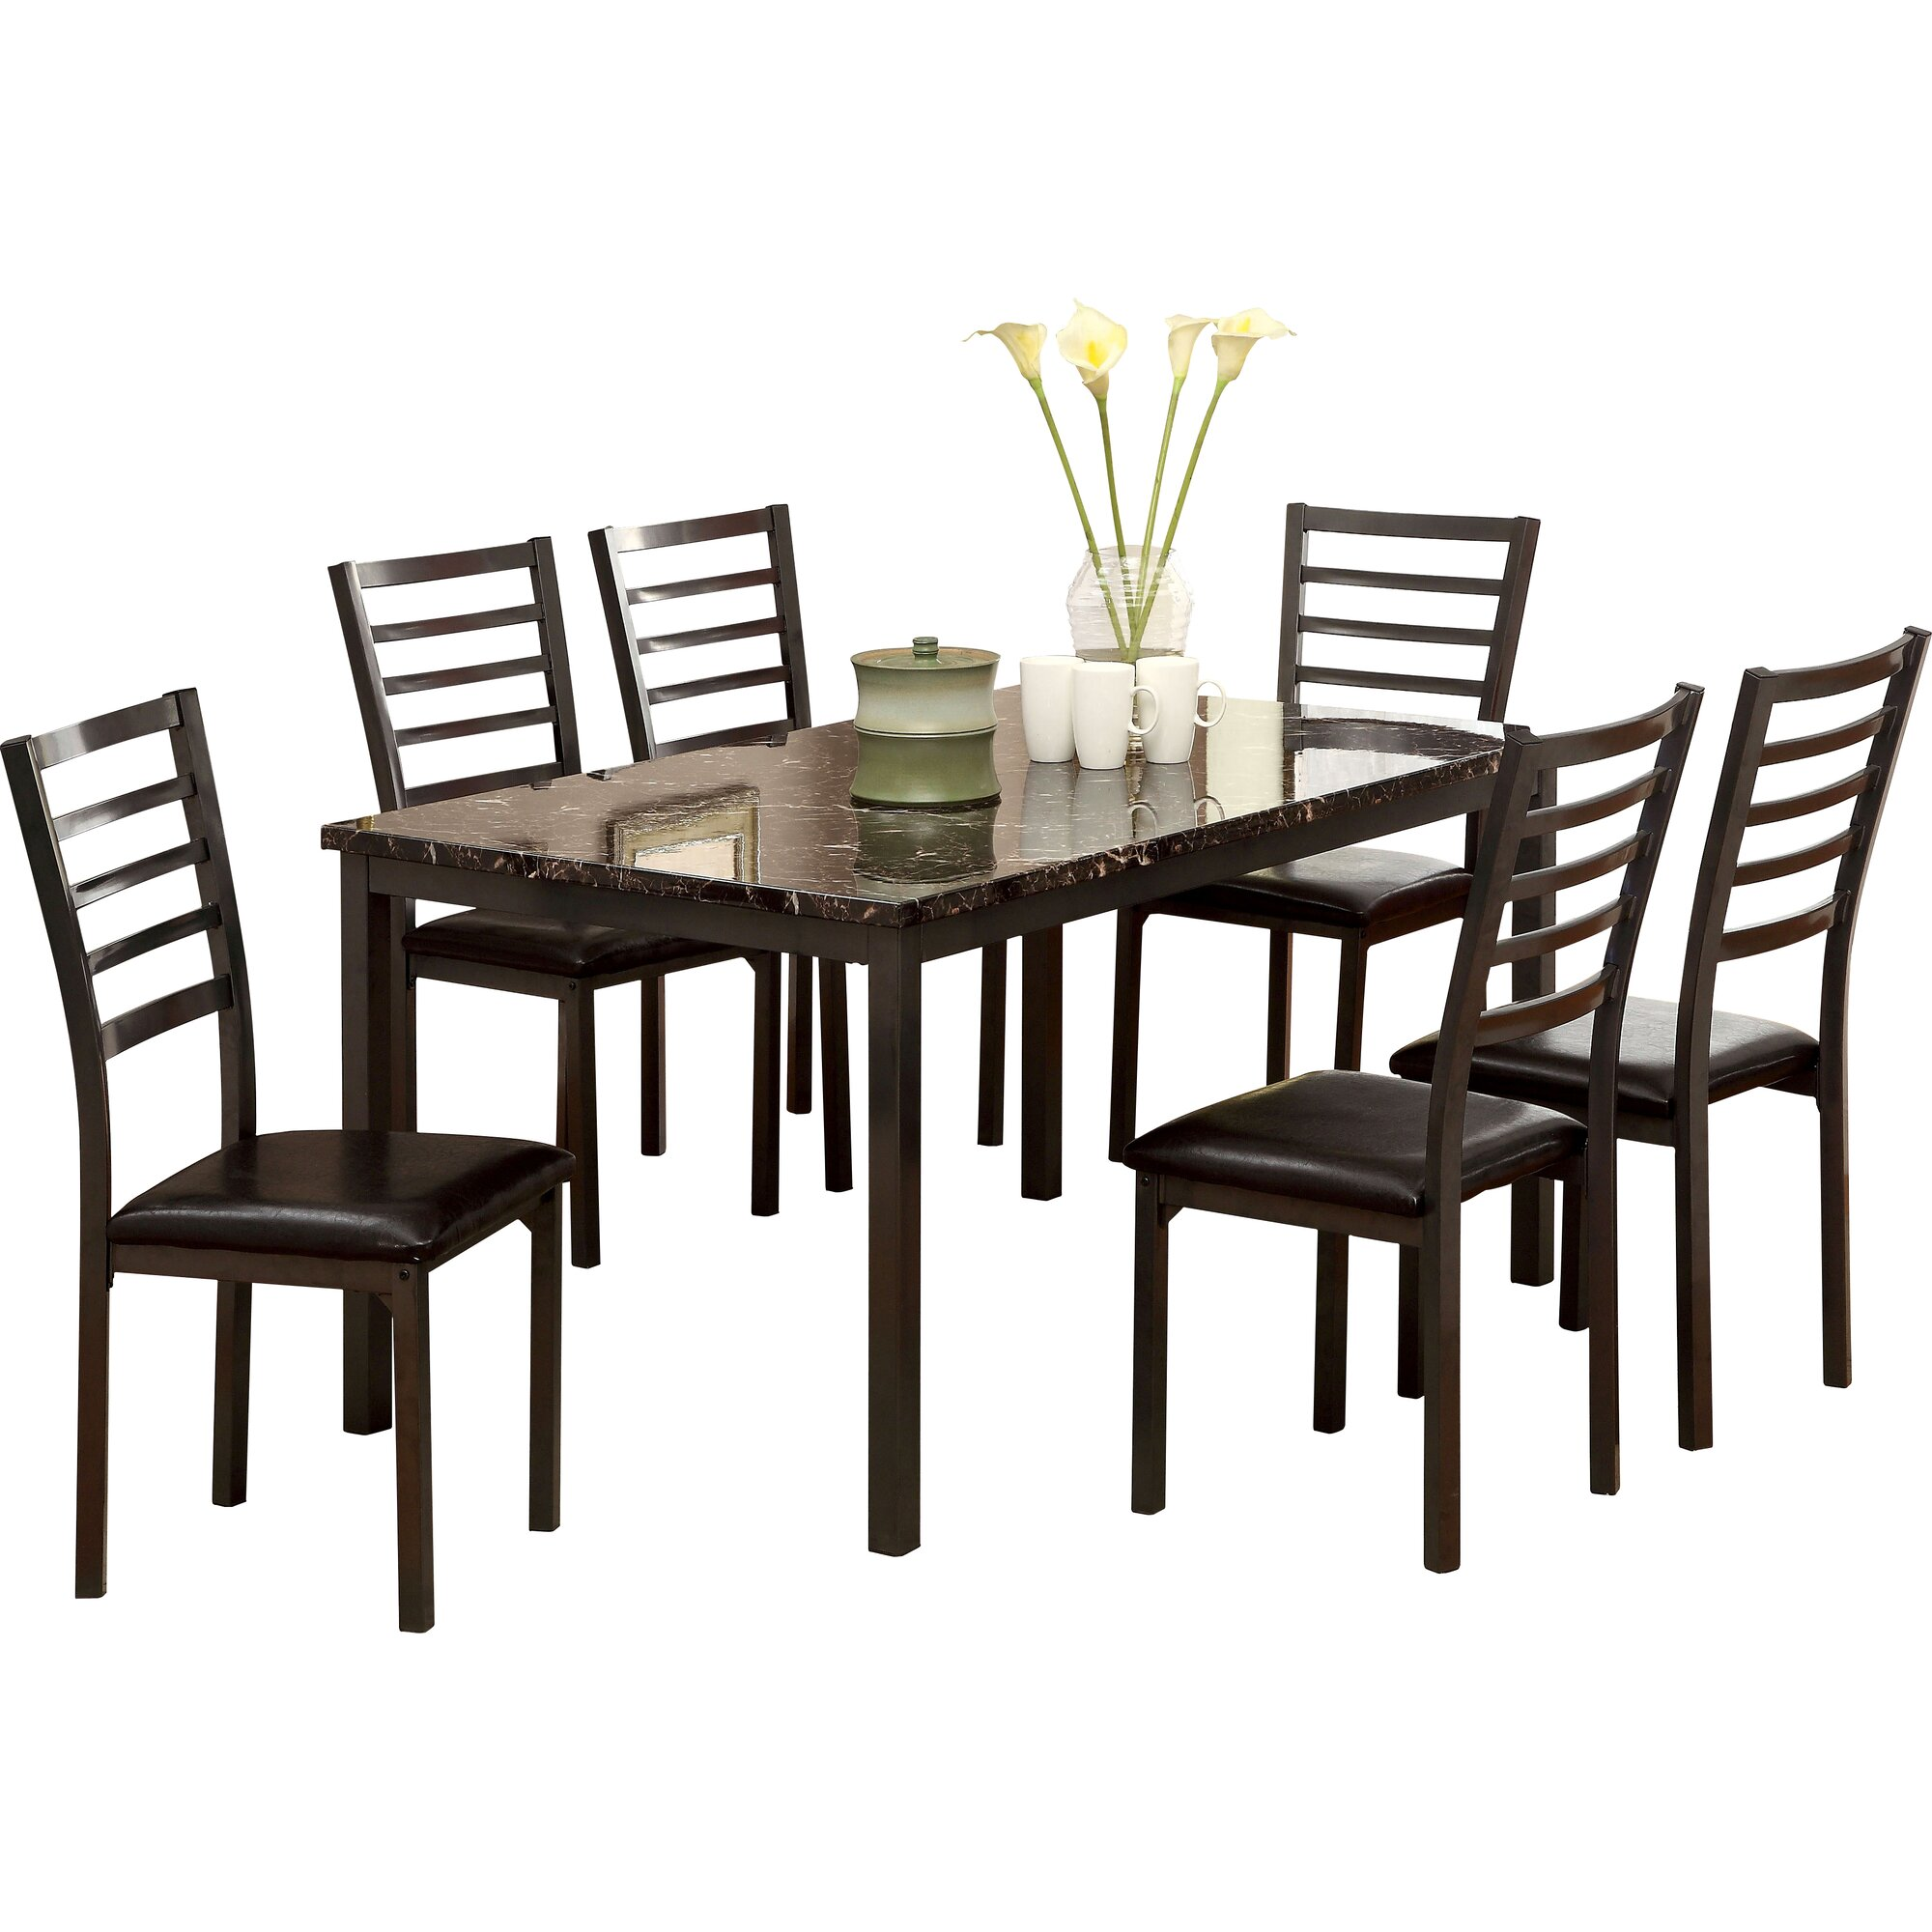 Hokku designs cramer dining table reviews for Cramer furniture